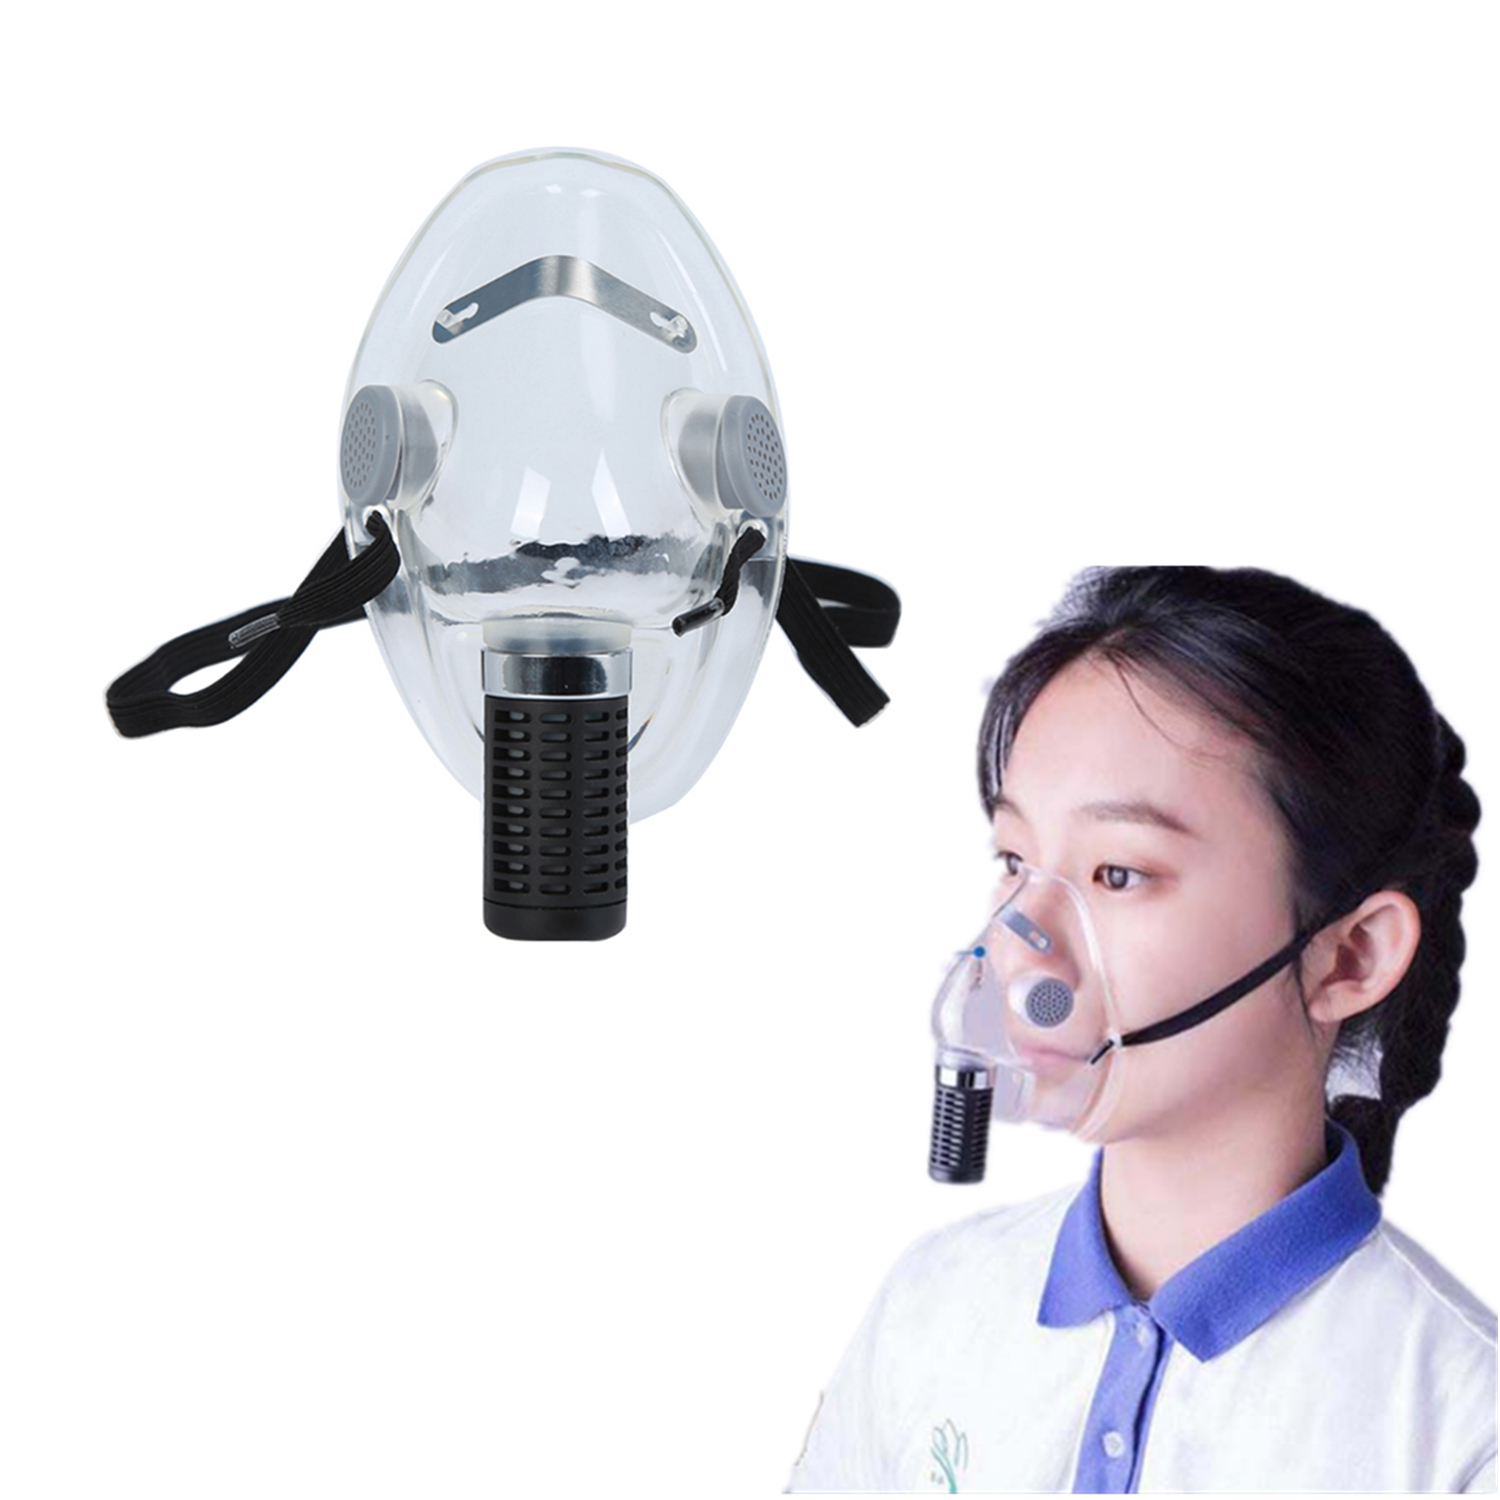 MDY-9 2020 Safety Masks Anti Dust Anti-fog Shield Respirator Reusable Protective Soft Face Mouth Mask Safe Protective Mask